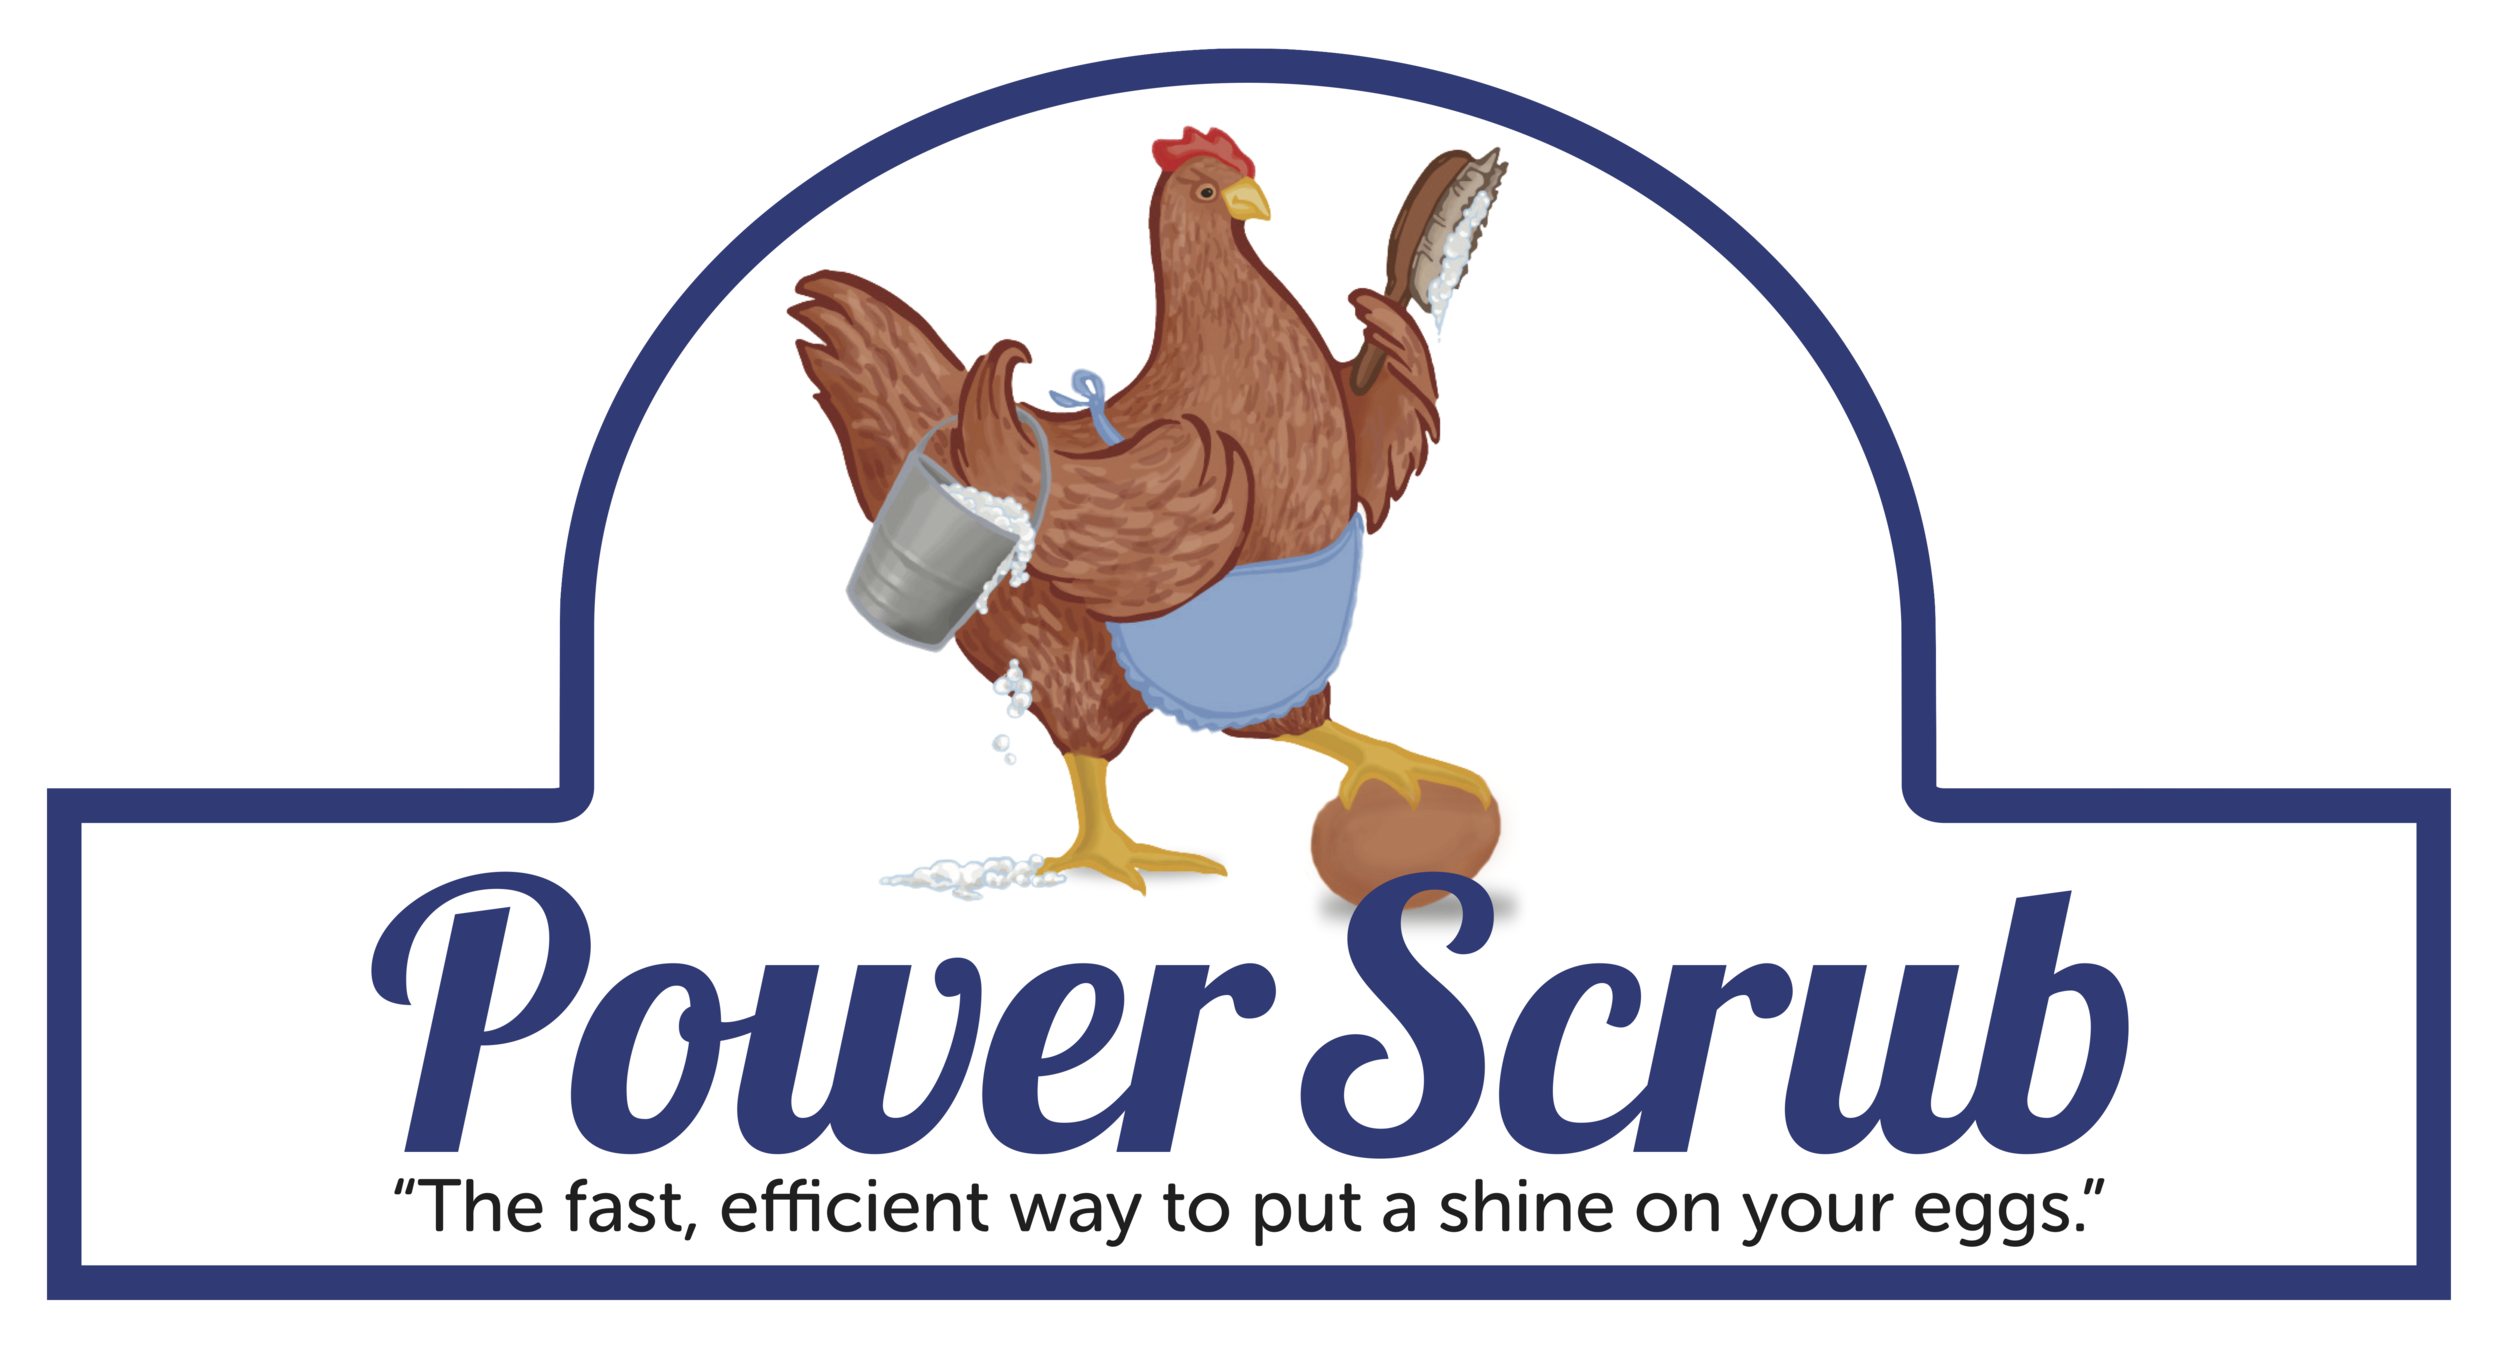 Power Scrub Commercial Egg Washer